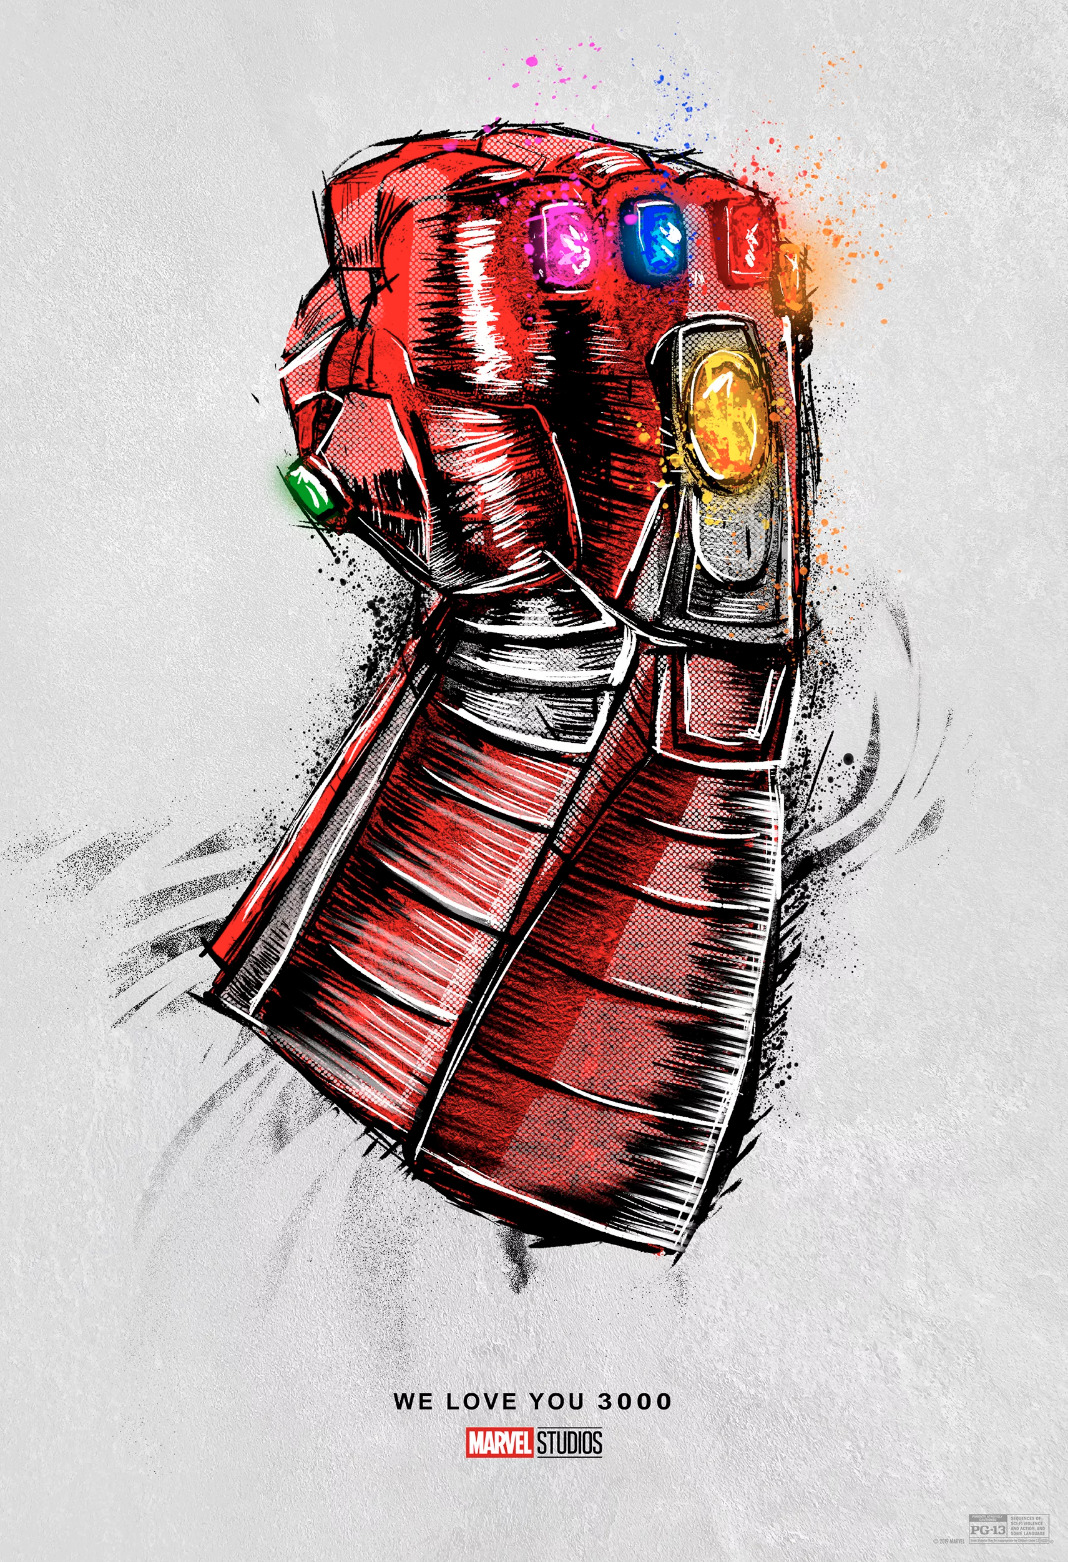 Avengers: Endgame re-release artwork